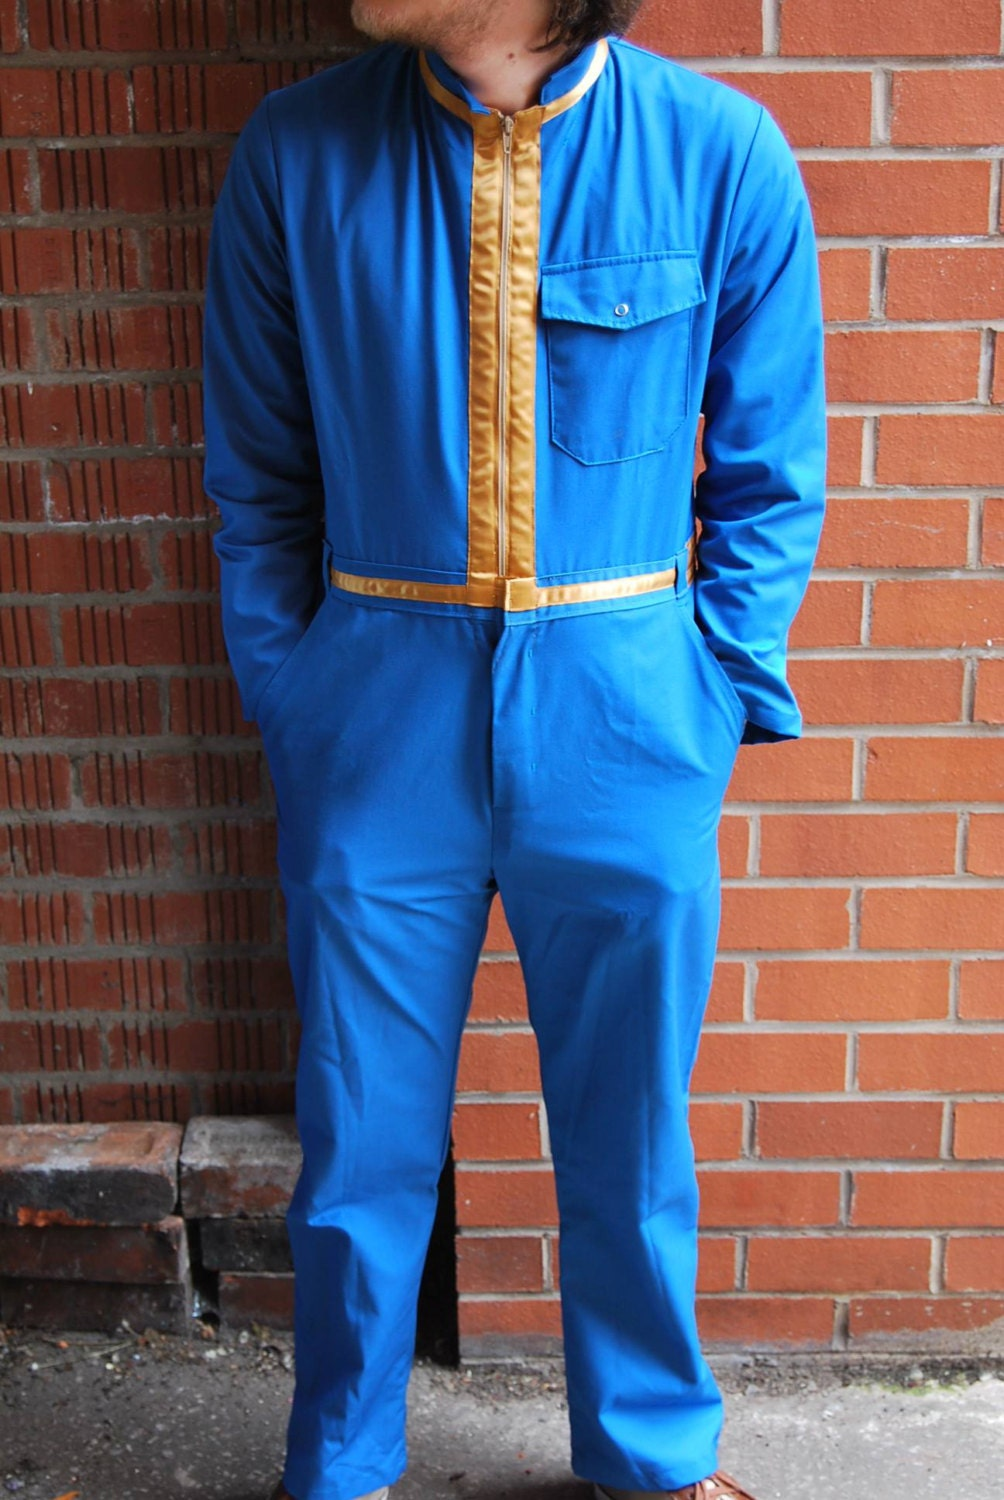 Vault 111 Inspired Jumpsuit From Fallout 4